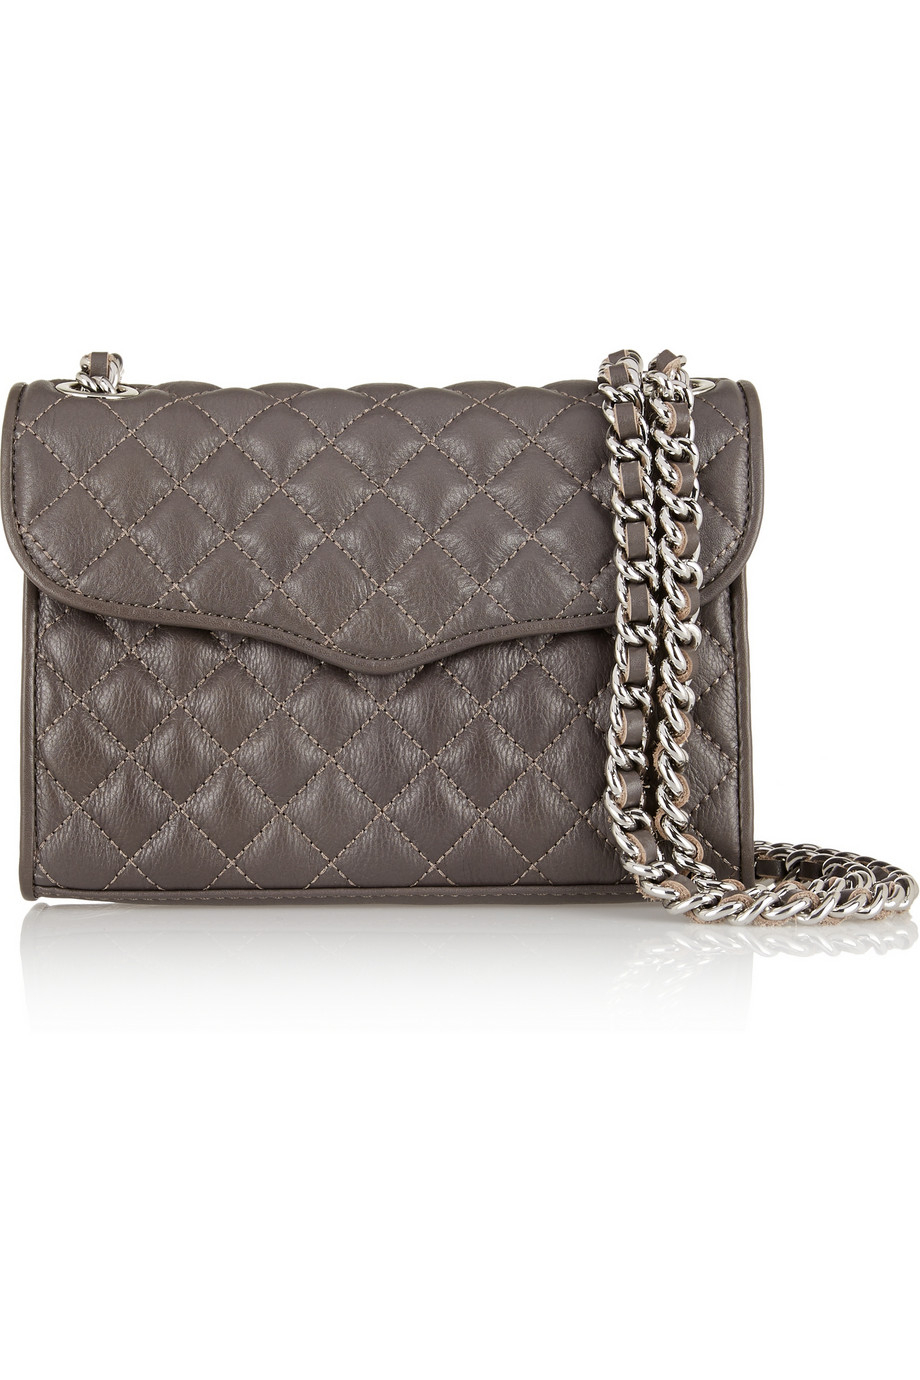 Rebecca Minkoff Quilted Affair Mini Leather Shoulder Bag